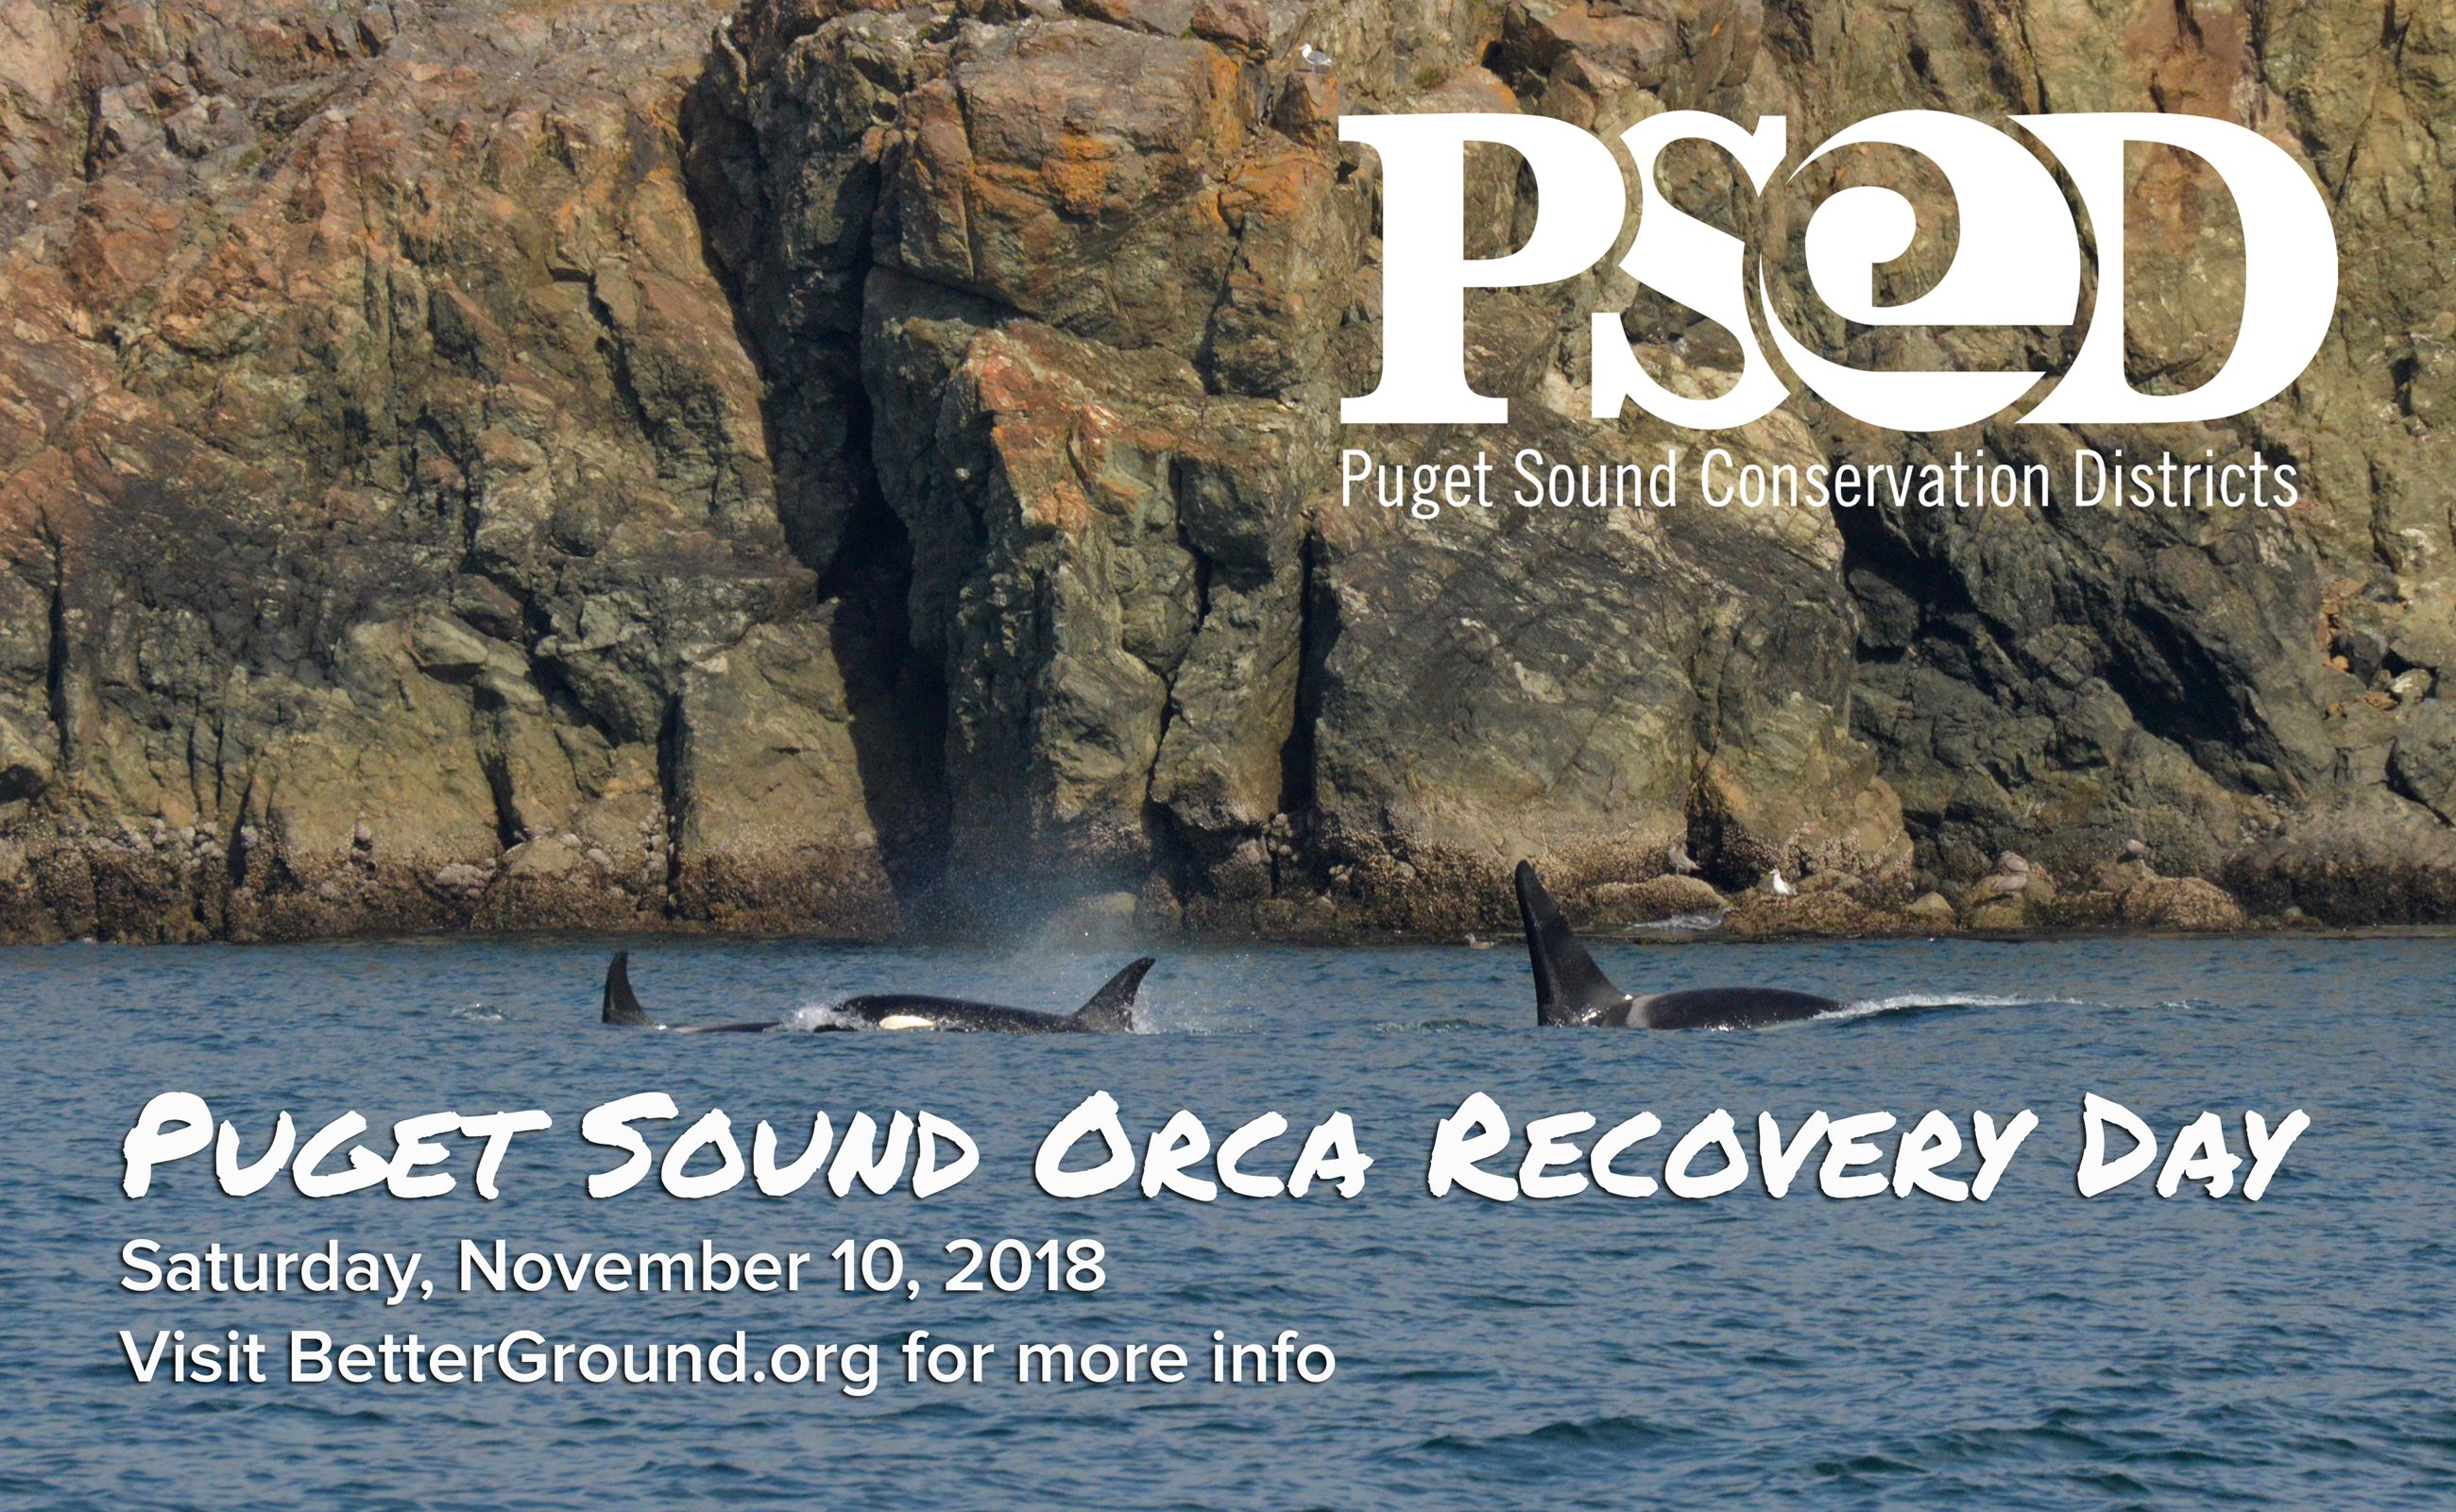 Orca Recovery Day Image 2